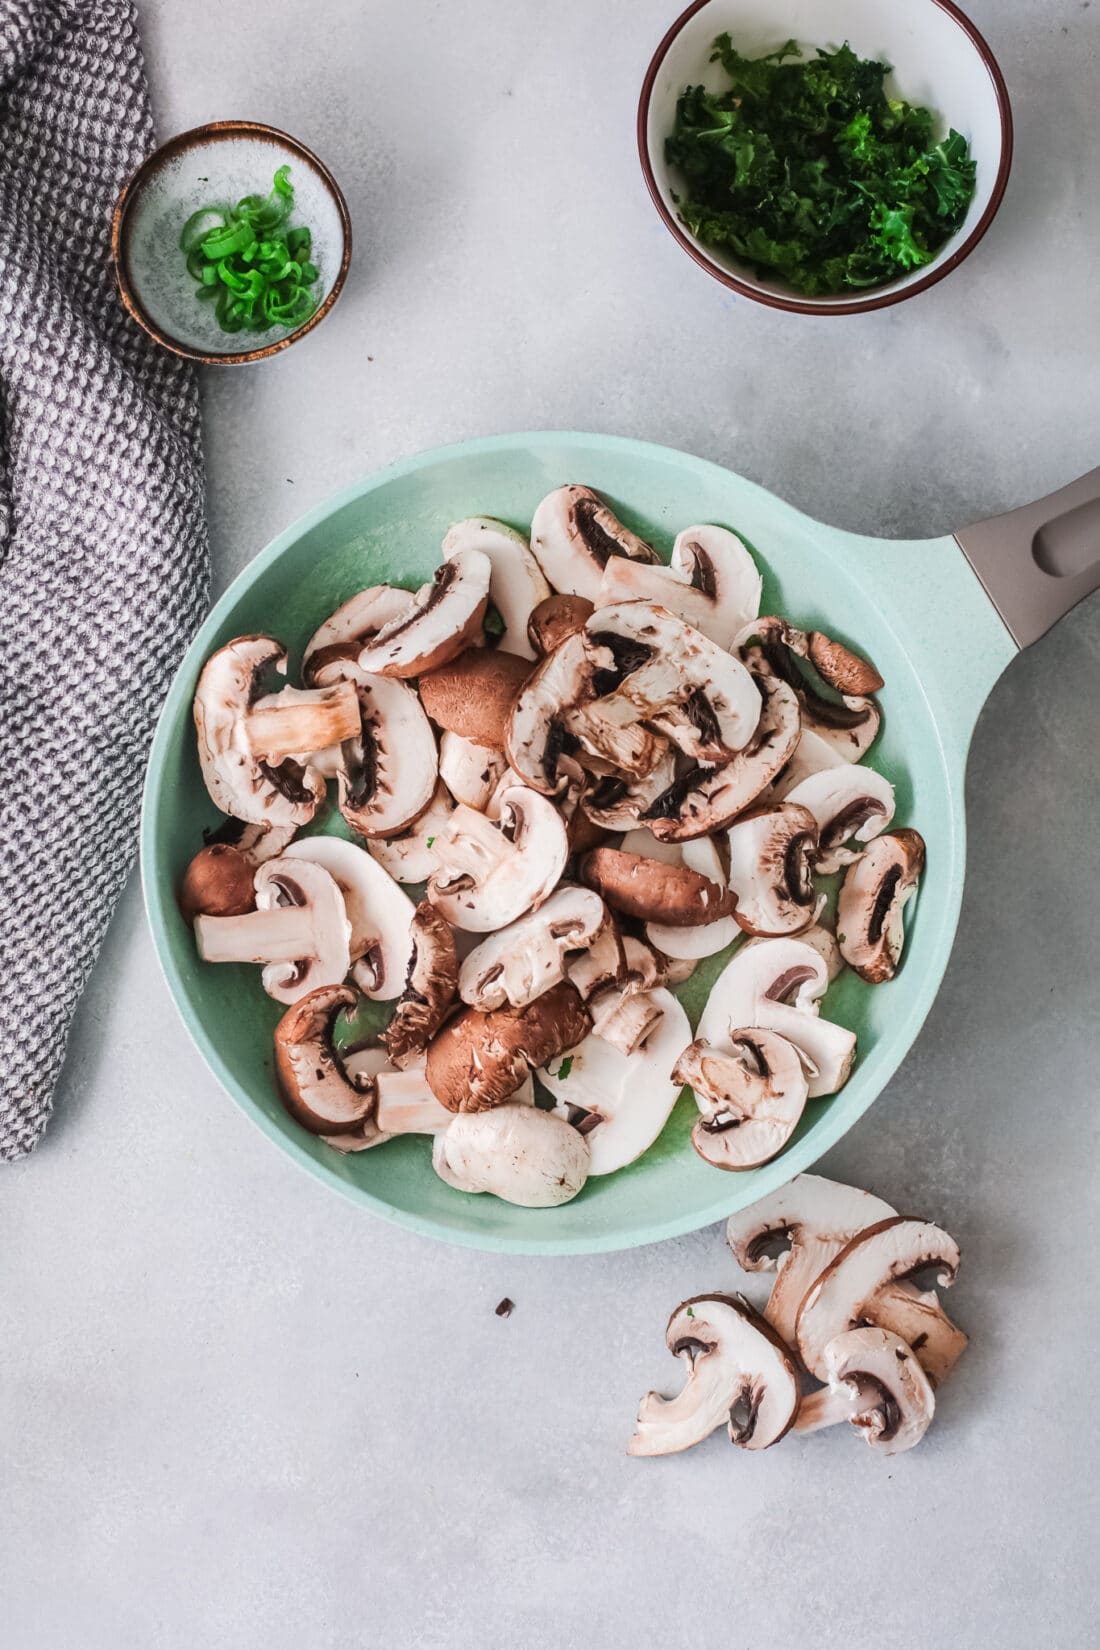 Vegetarian Korean Noodle Step 2. This simple and easy Vegetarian Korean Noodles dish is full of flavor and can be made in under 30 minutes. The Korean noodles are stir-fried in a savory sauce made with fresh vegetables such as mushrooms, red onion, ginger, garlic, and kale.